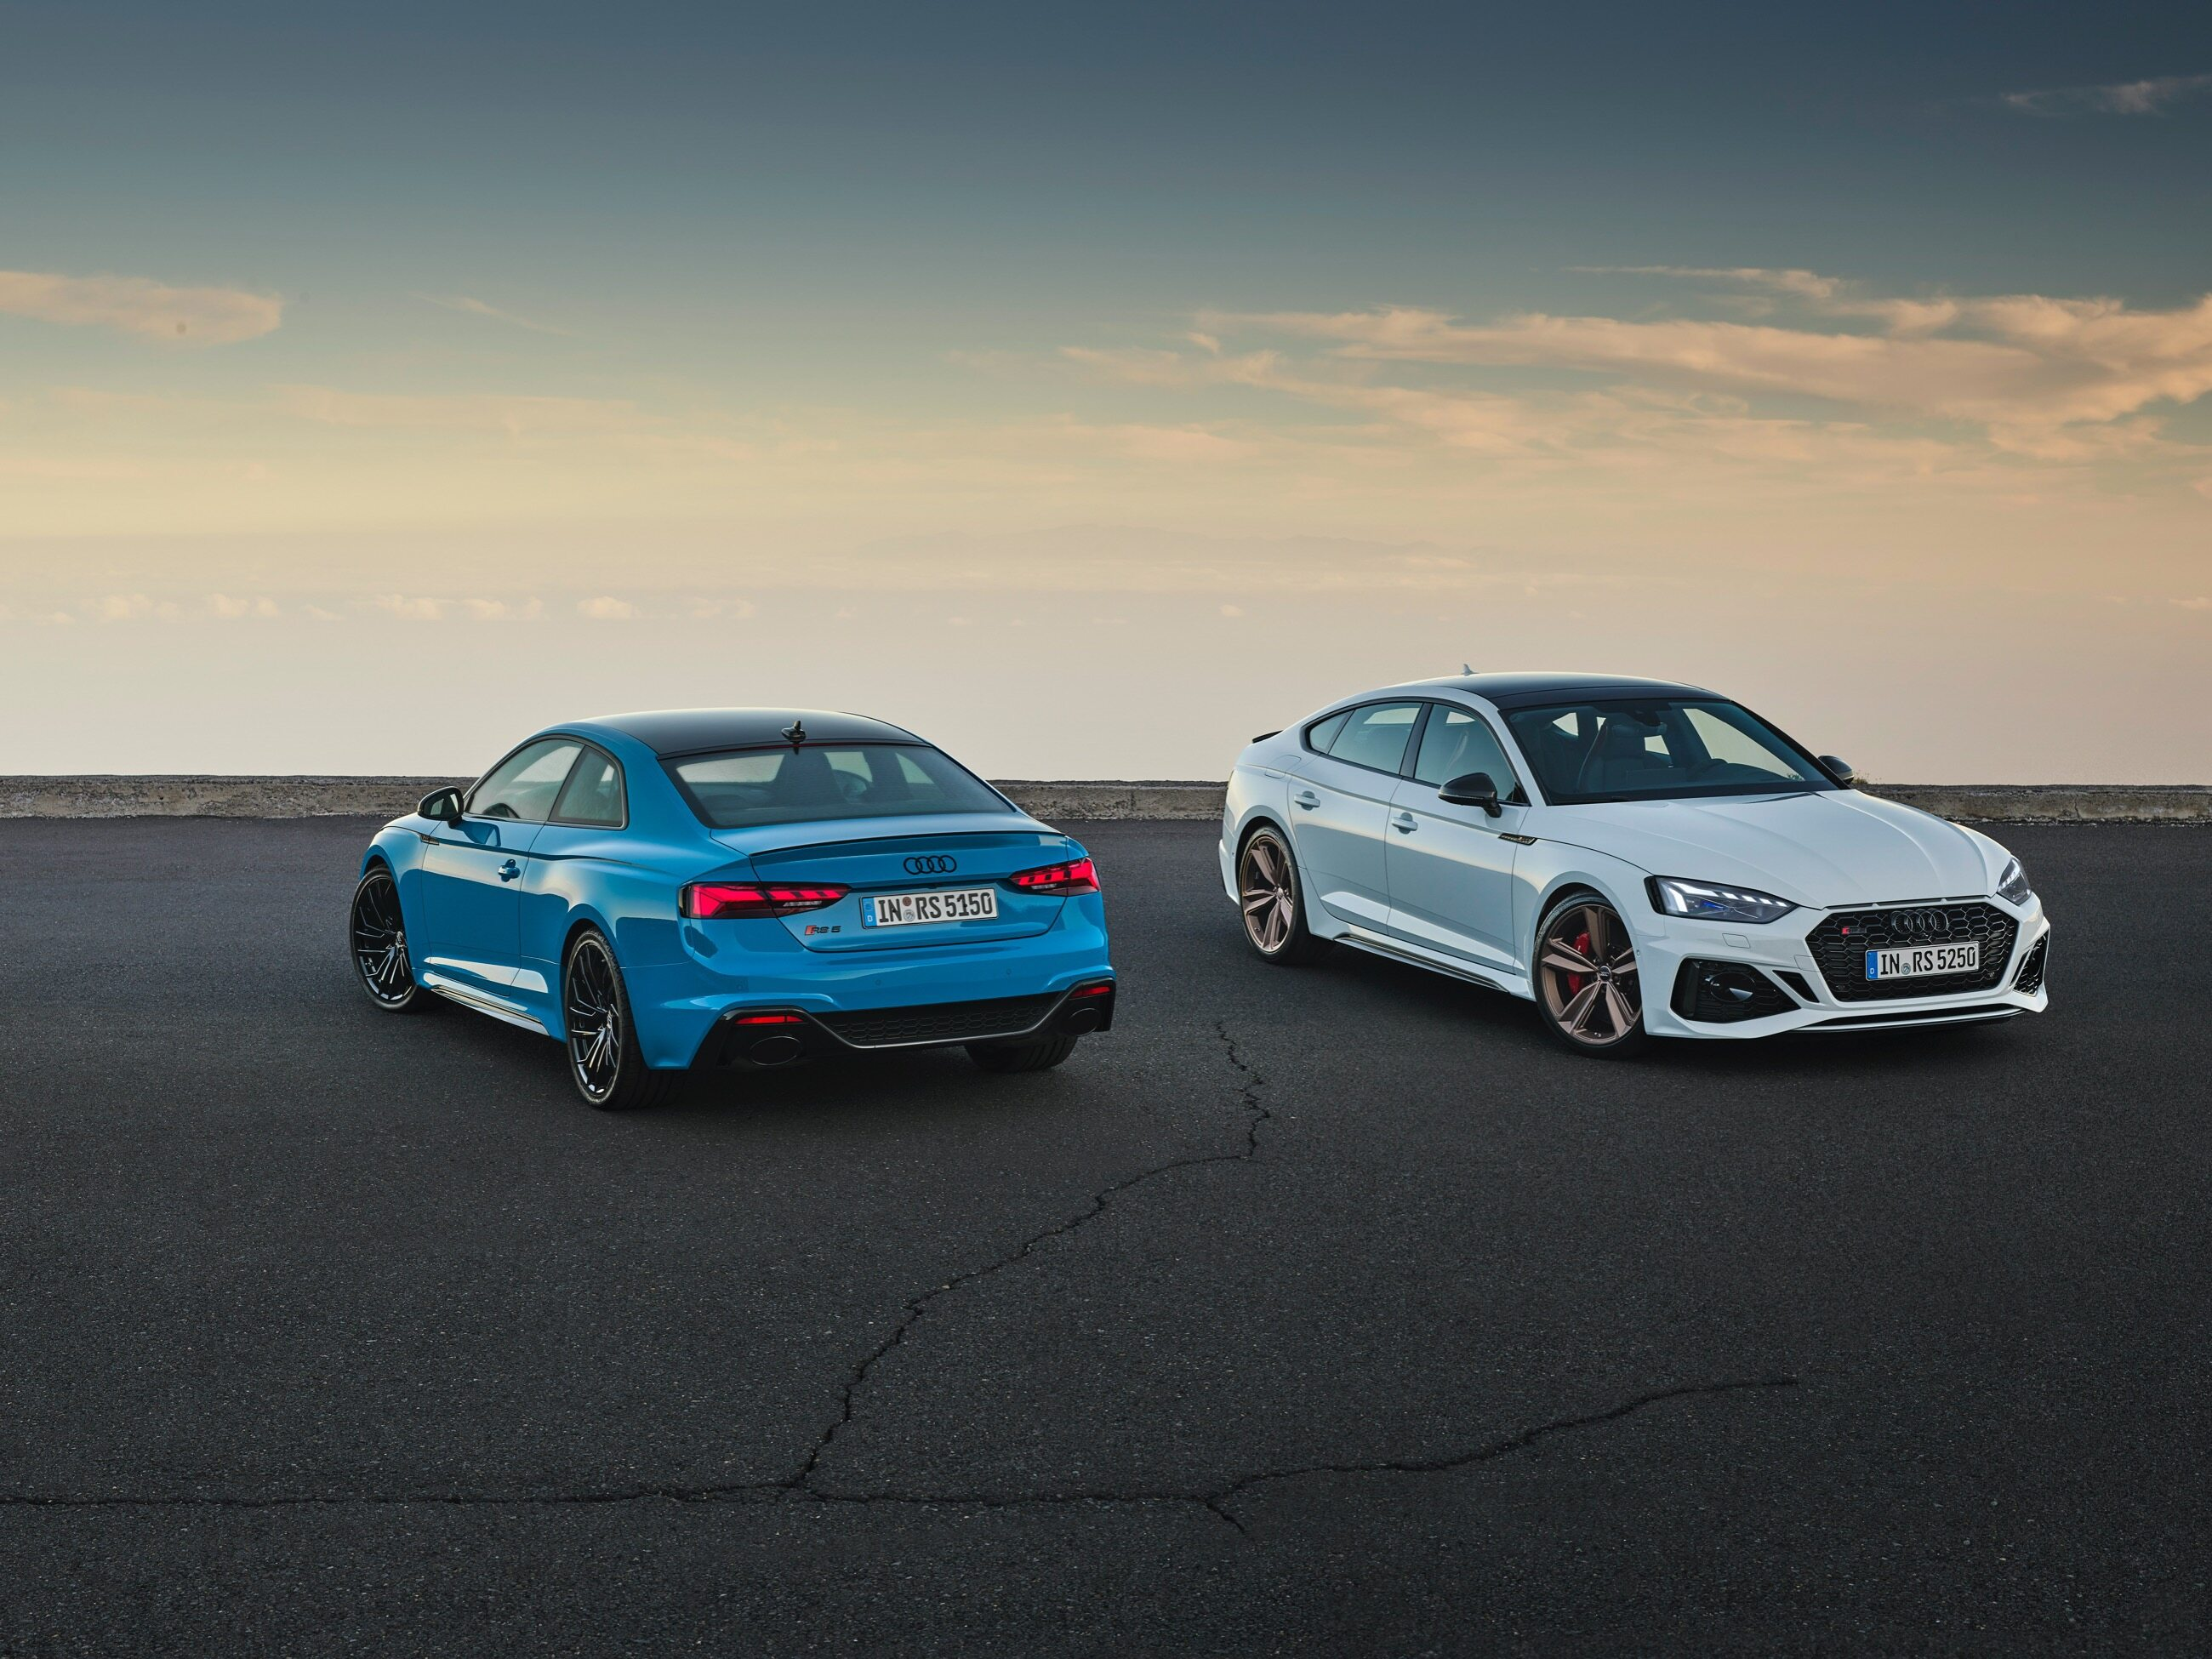 Audi RS 5 Coupé/Audi RS 5 Sportback